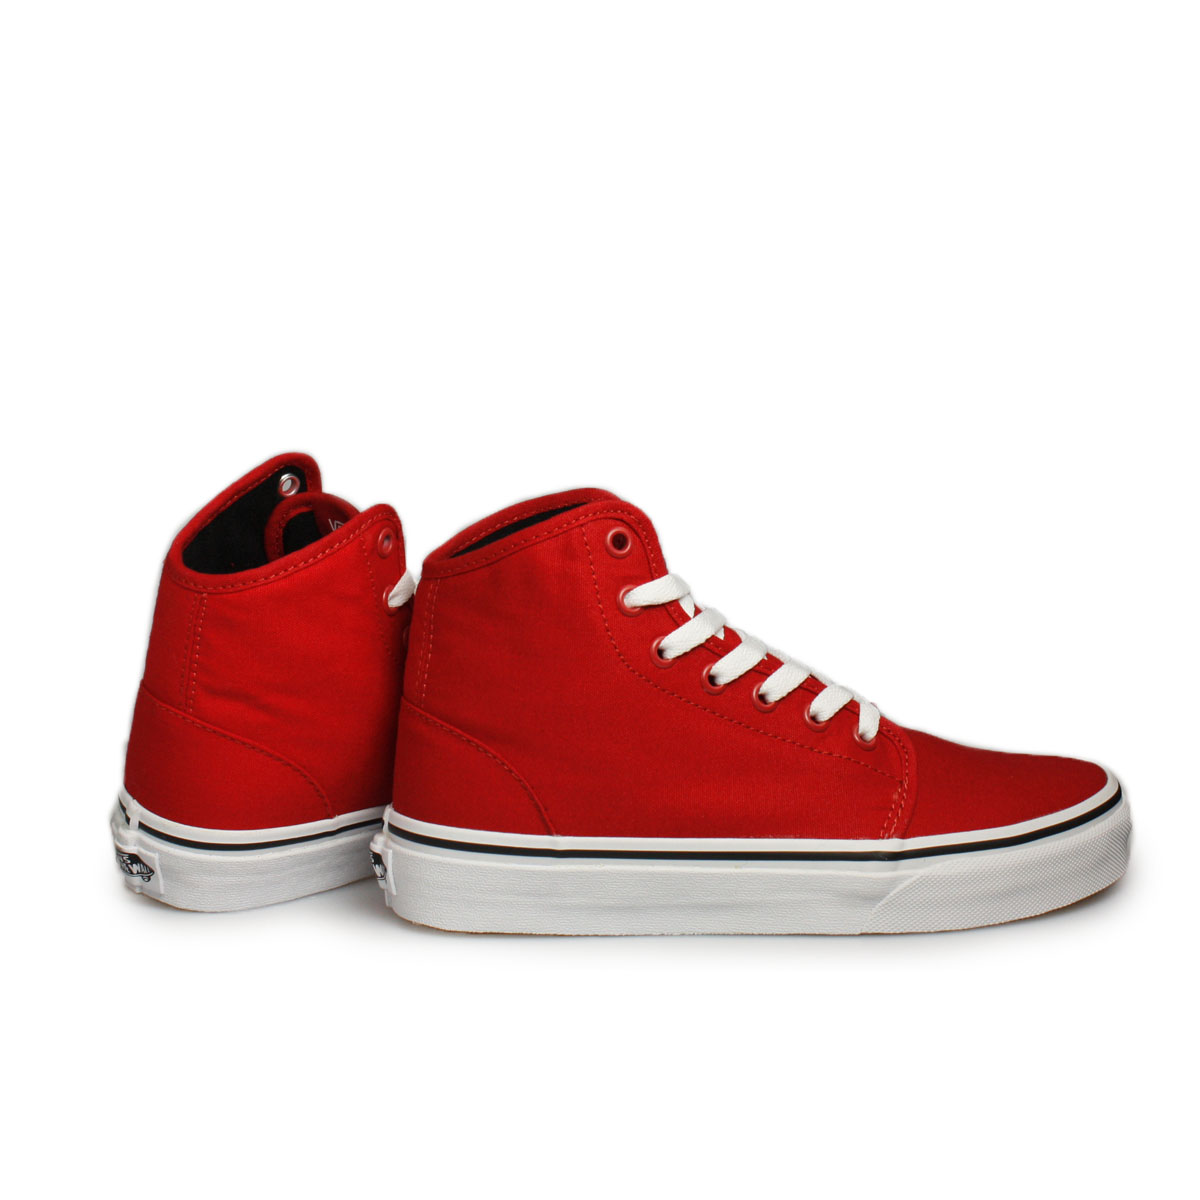 Vans Shoes Women High Tops With Model Inspirational ...